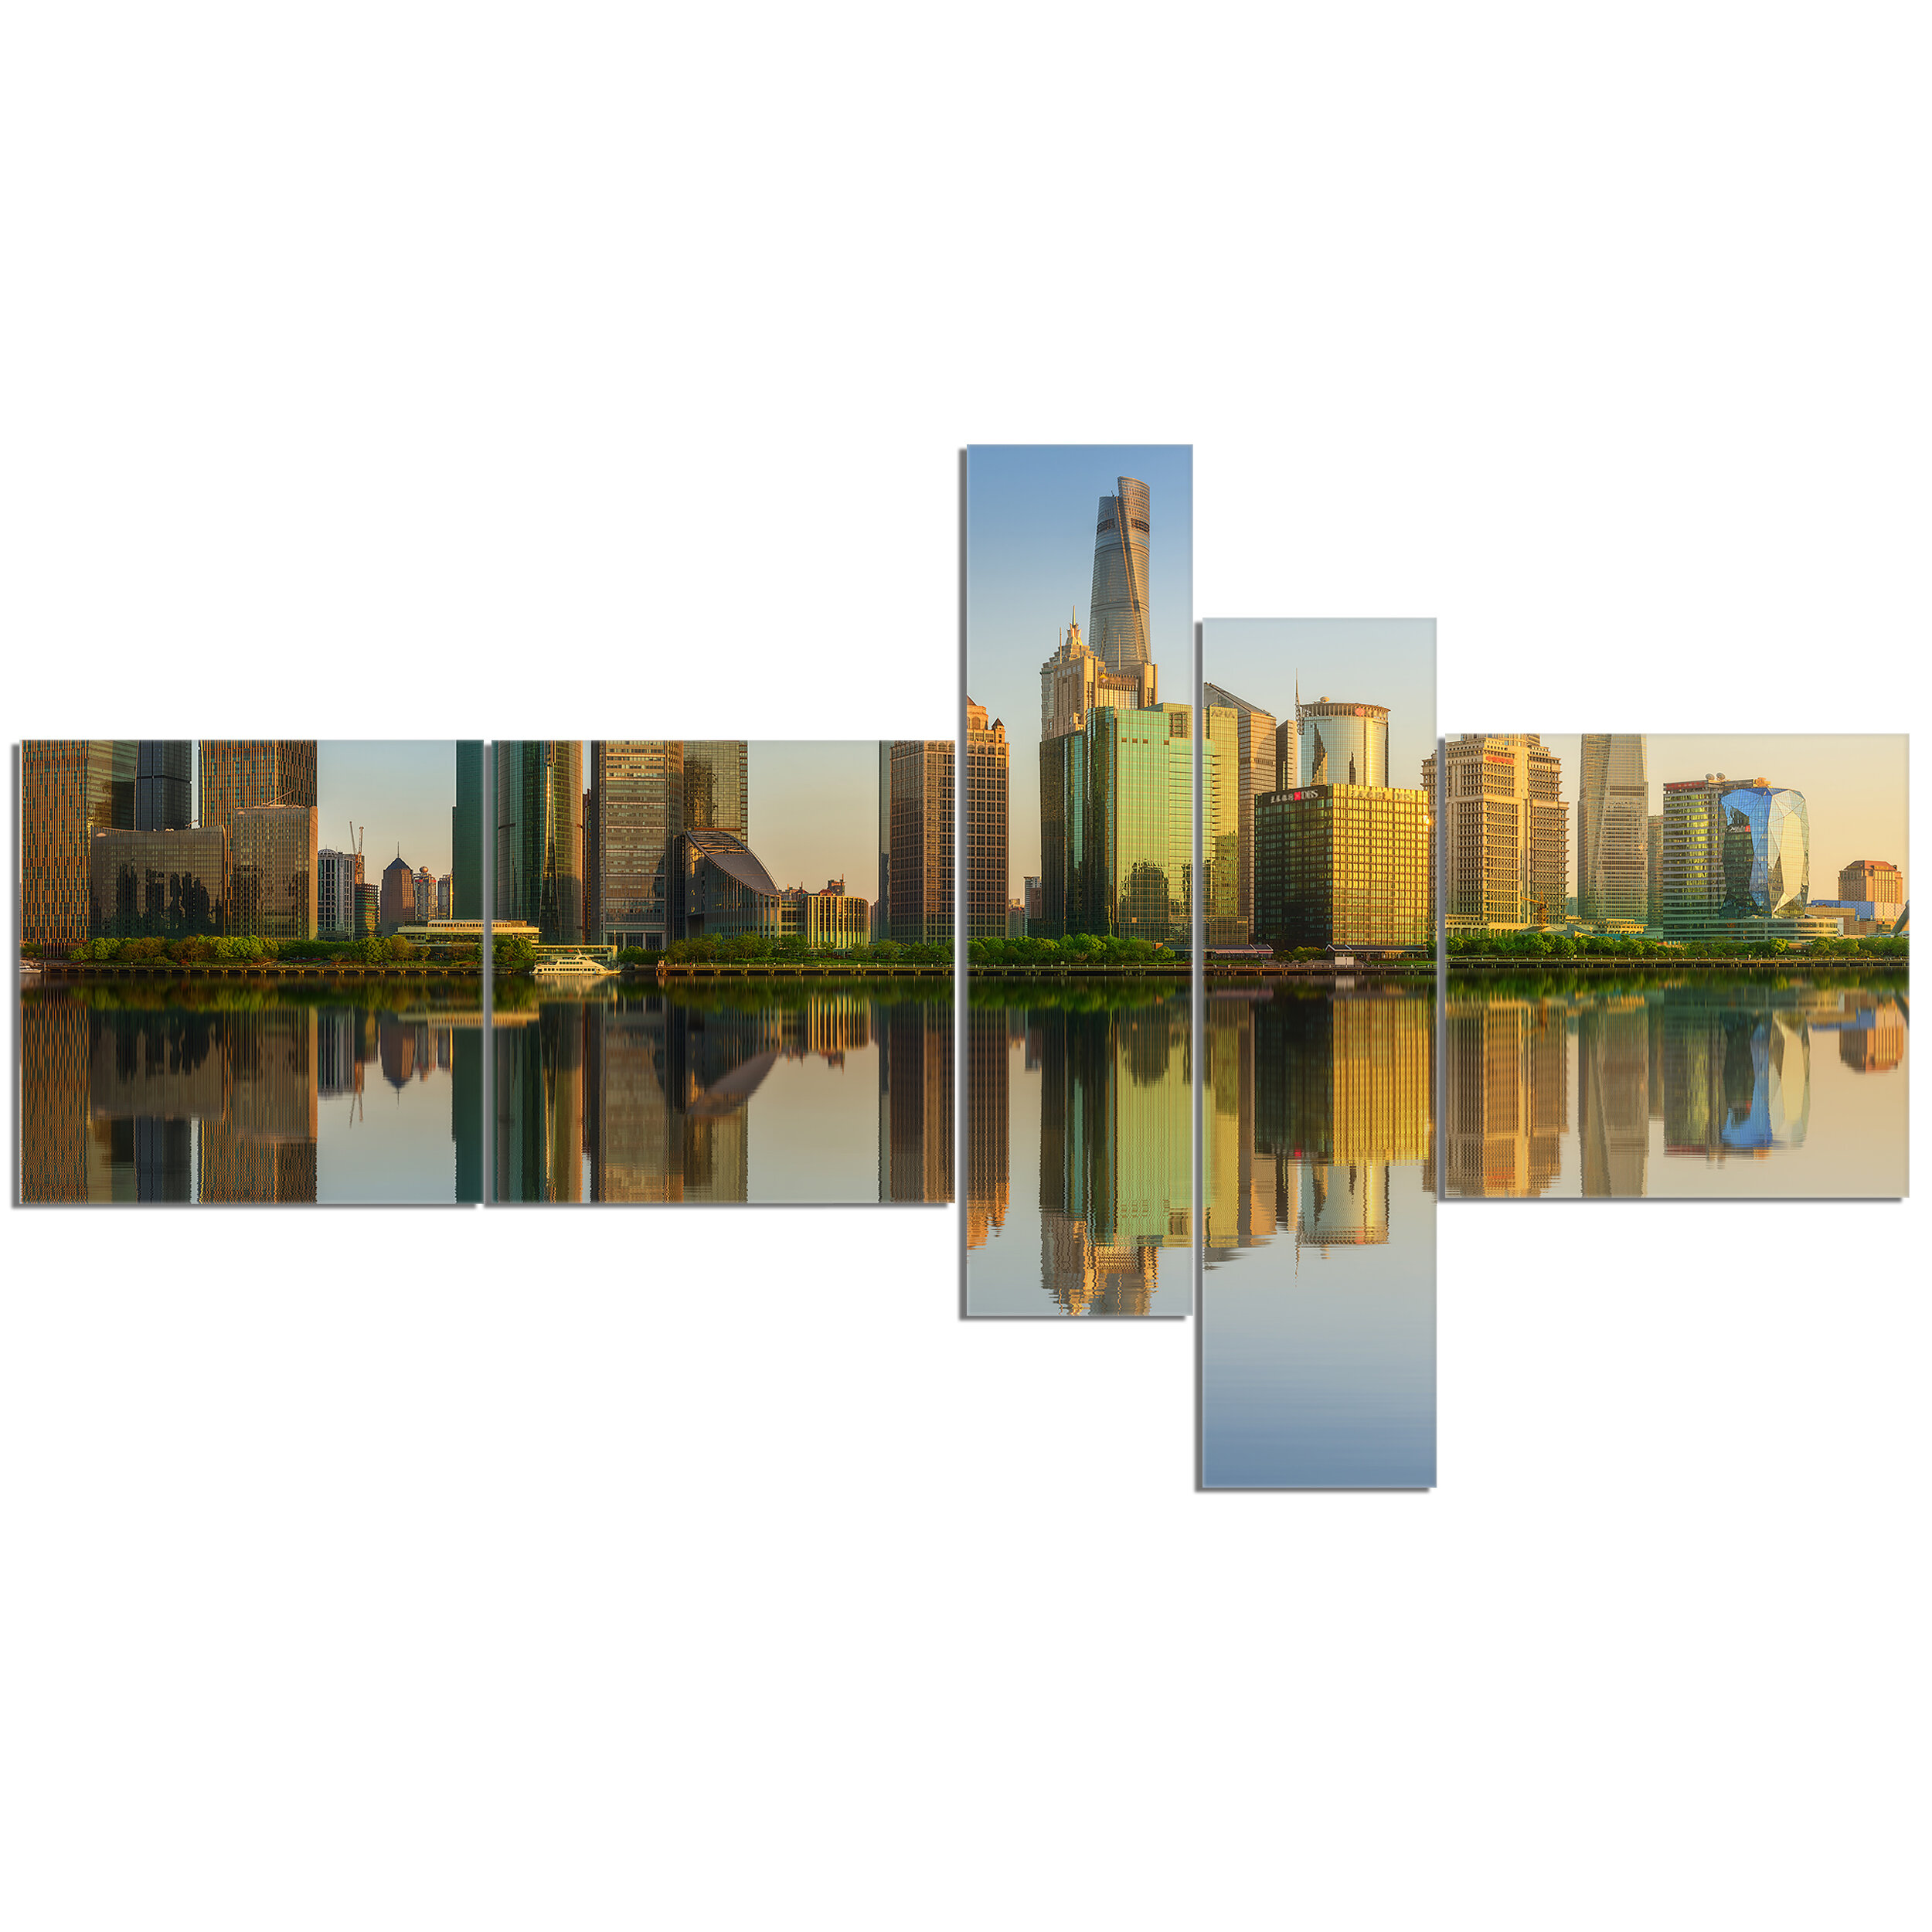 East Urban Home Shanghai Huangpu River At Sunset Photographic Print Multi Piece Image On Canvas Wayfair